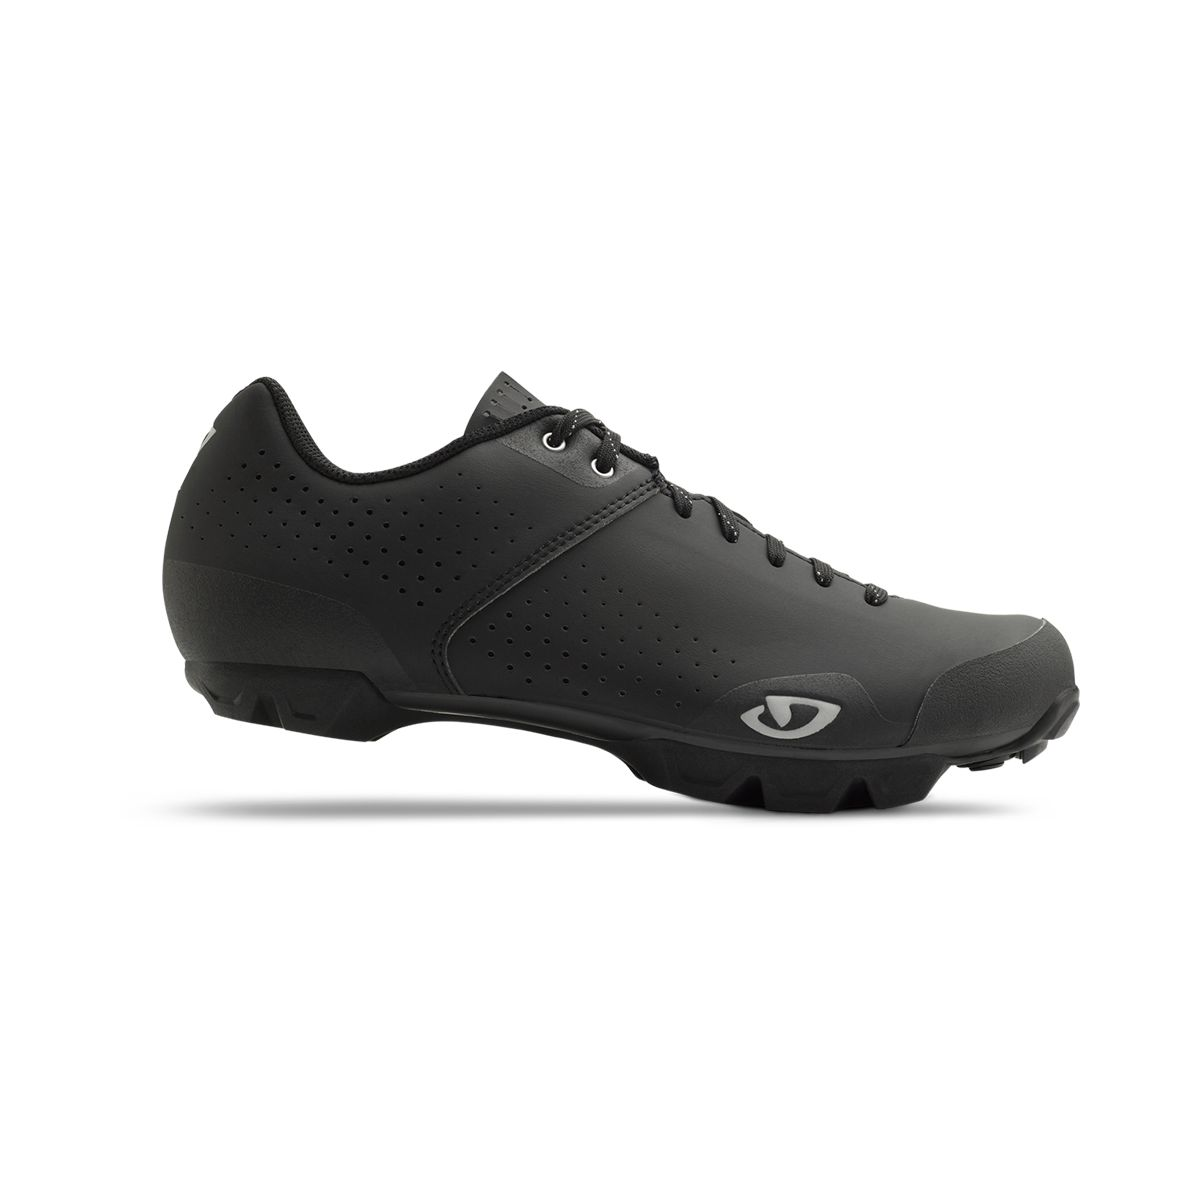 PRIVATEER LACE Gravel Shoes